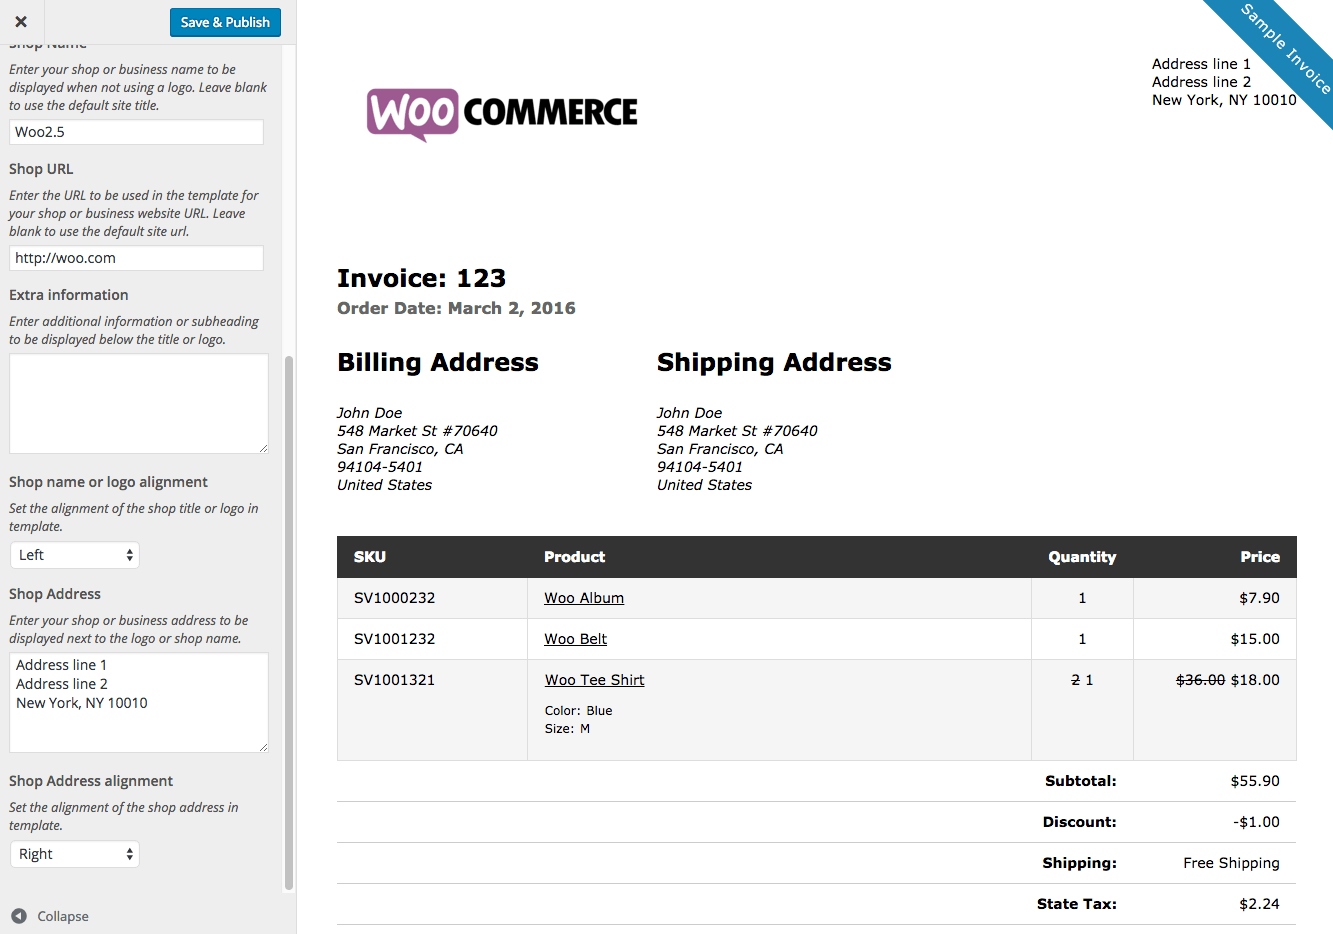 Carsforlessus  Surprising Woocommerce Print Invoices Amp Packing Lists  Woocommerce Docs With Remarkable Woocommerce Print Invoices  Packing Lists Customizer With Easy On The Eye Singapore Invoice Template Also Pay My Invoice In Addition Standard Invoice Format Excel And Make Your Own Invoice Template Free As Well As Invoice Prices For New Cars Additionally Partial Invoice From Docswoocommercecom With Carsforlessus  Remarkable Woocommerce Print Invoices Amp Packing Lists  Woocommerce Docs With Easy On The Eye Woocommerce Print Invoices  Packing Lists Customizer And Surprising Singapore Invoice Template Also Pay My Invoice In Addition Standard Invoice Format Excel From Docswoocommercecom